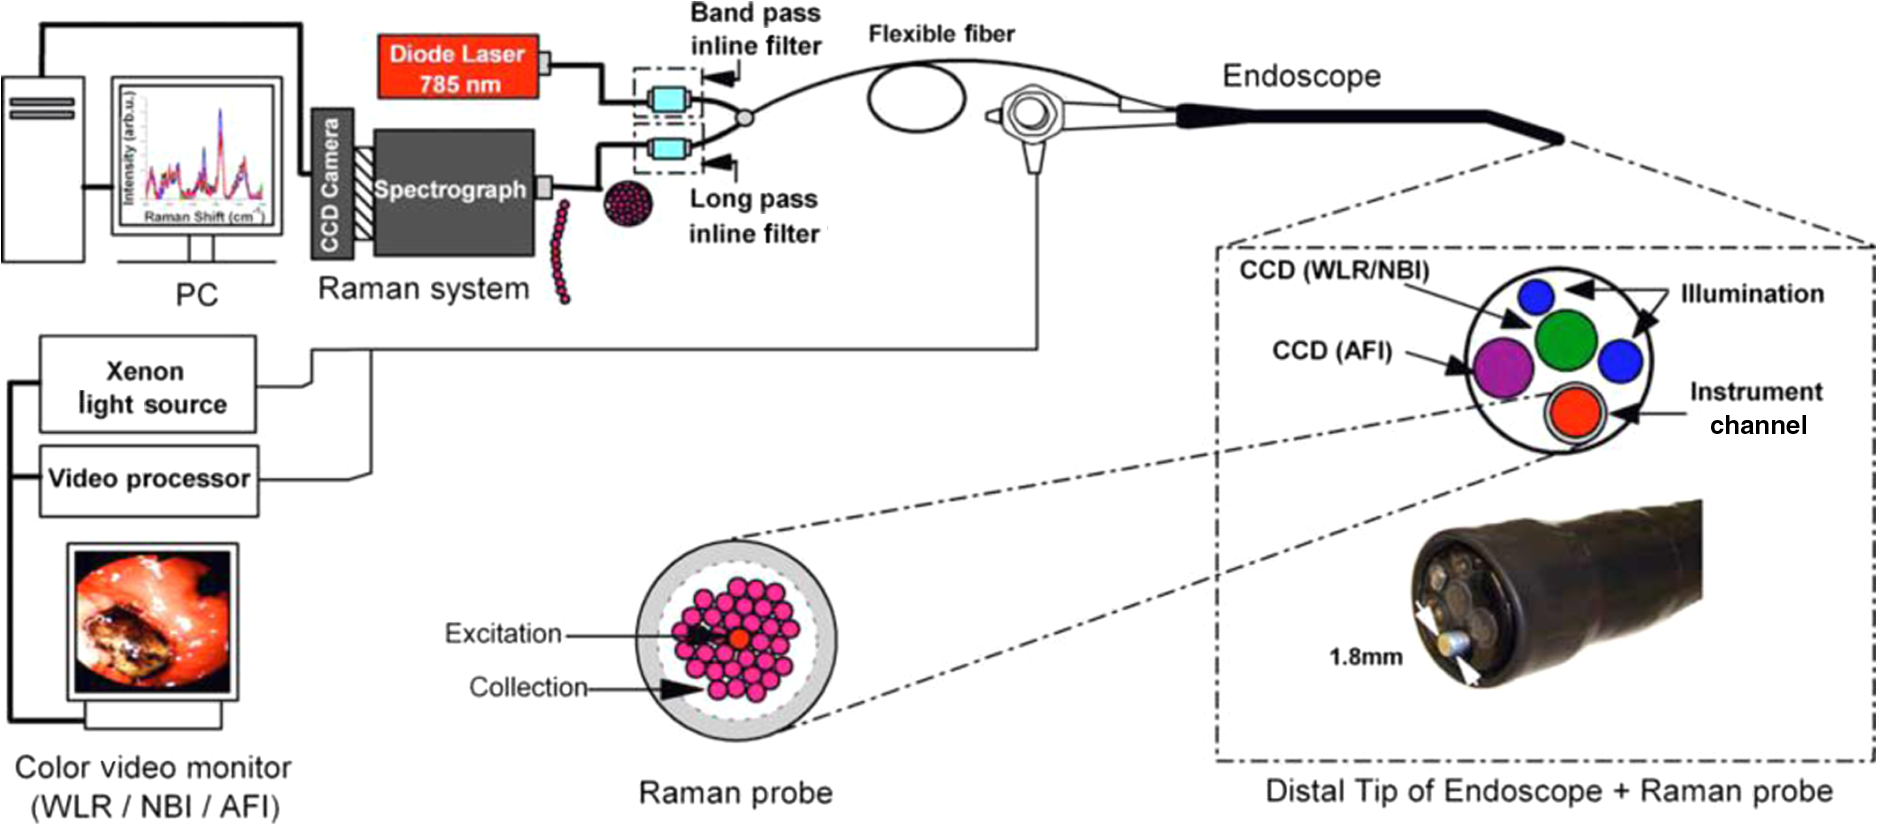 Iin Vivo I Raman Spectroscopy From Basics To Applications Color Lights Organ Circuit Using Cmos Ics Schematic Of The Integrated And Trimodal Endoscopic Imaging System Developed For In Tissue Measurements At Endoscopy